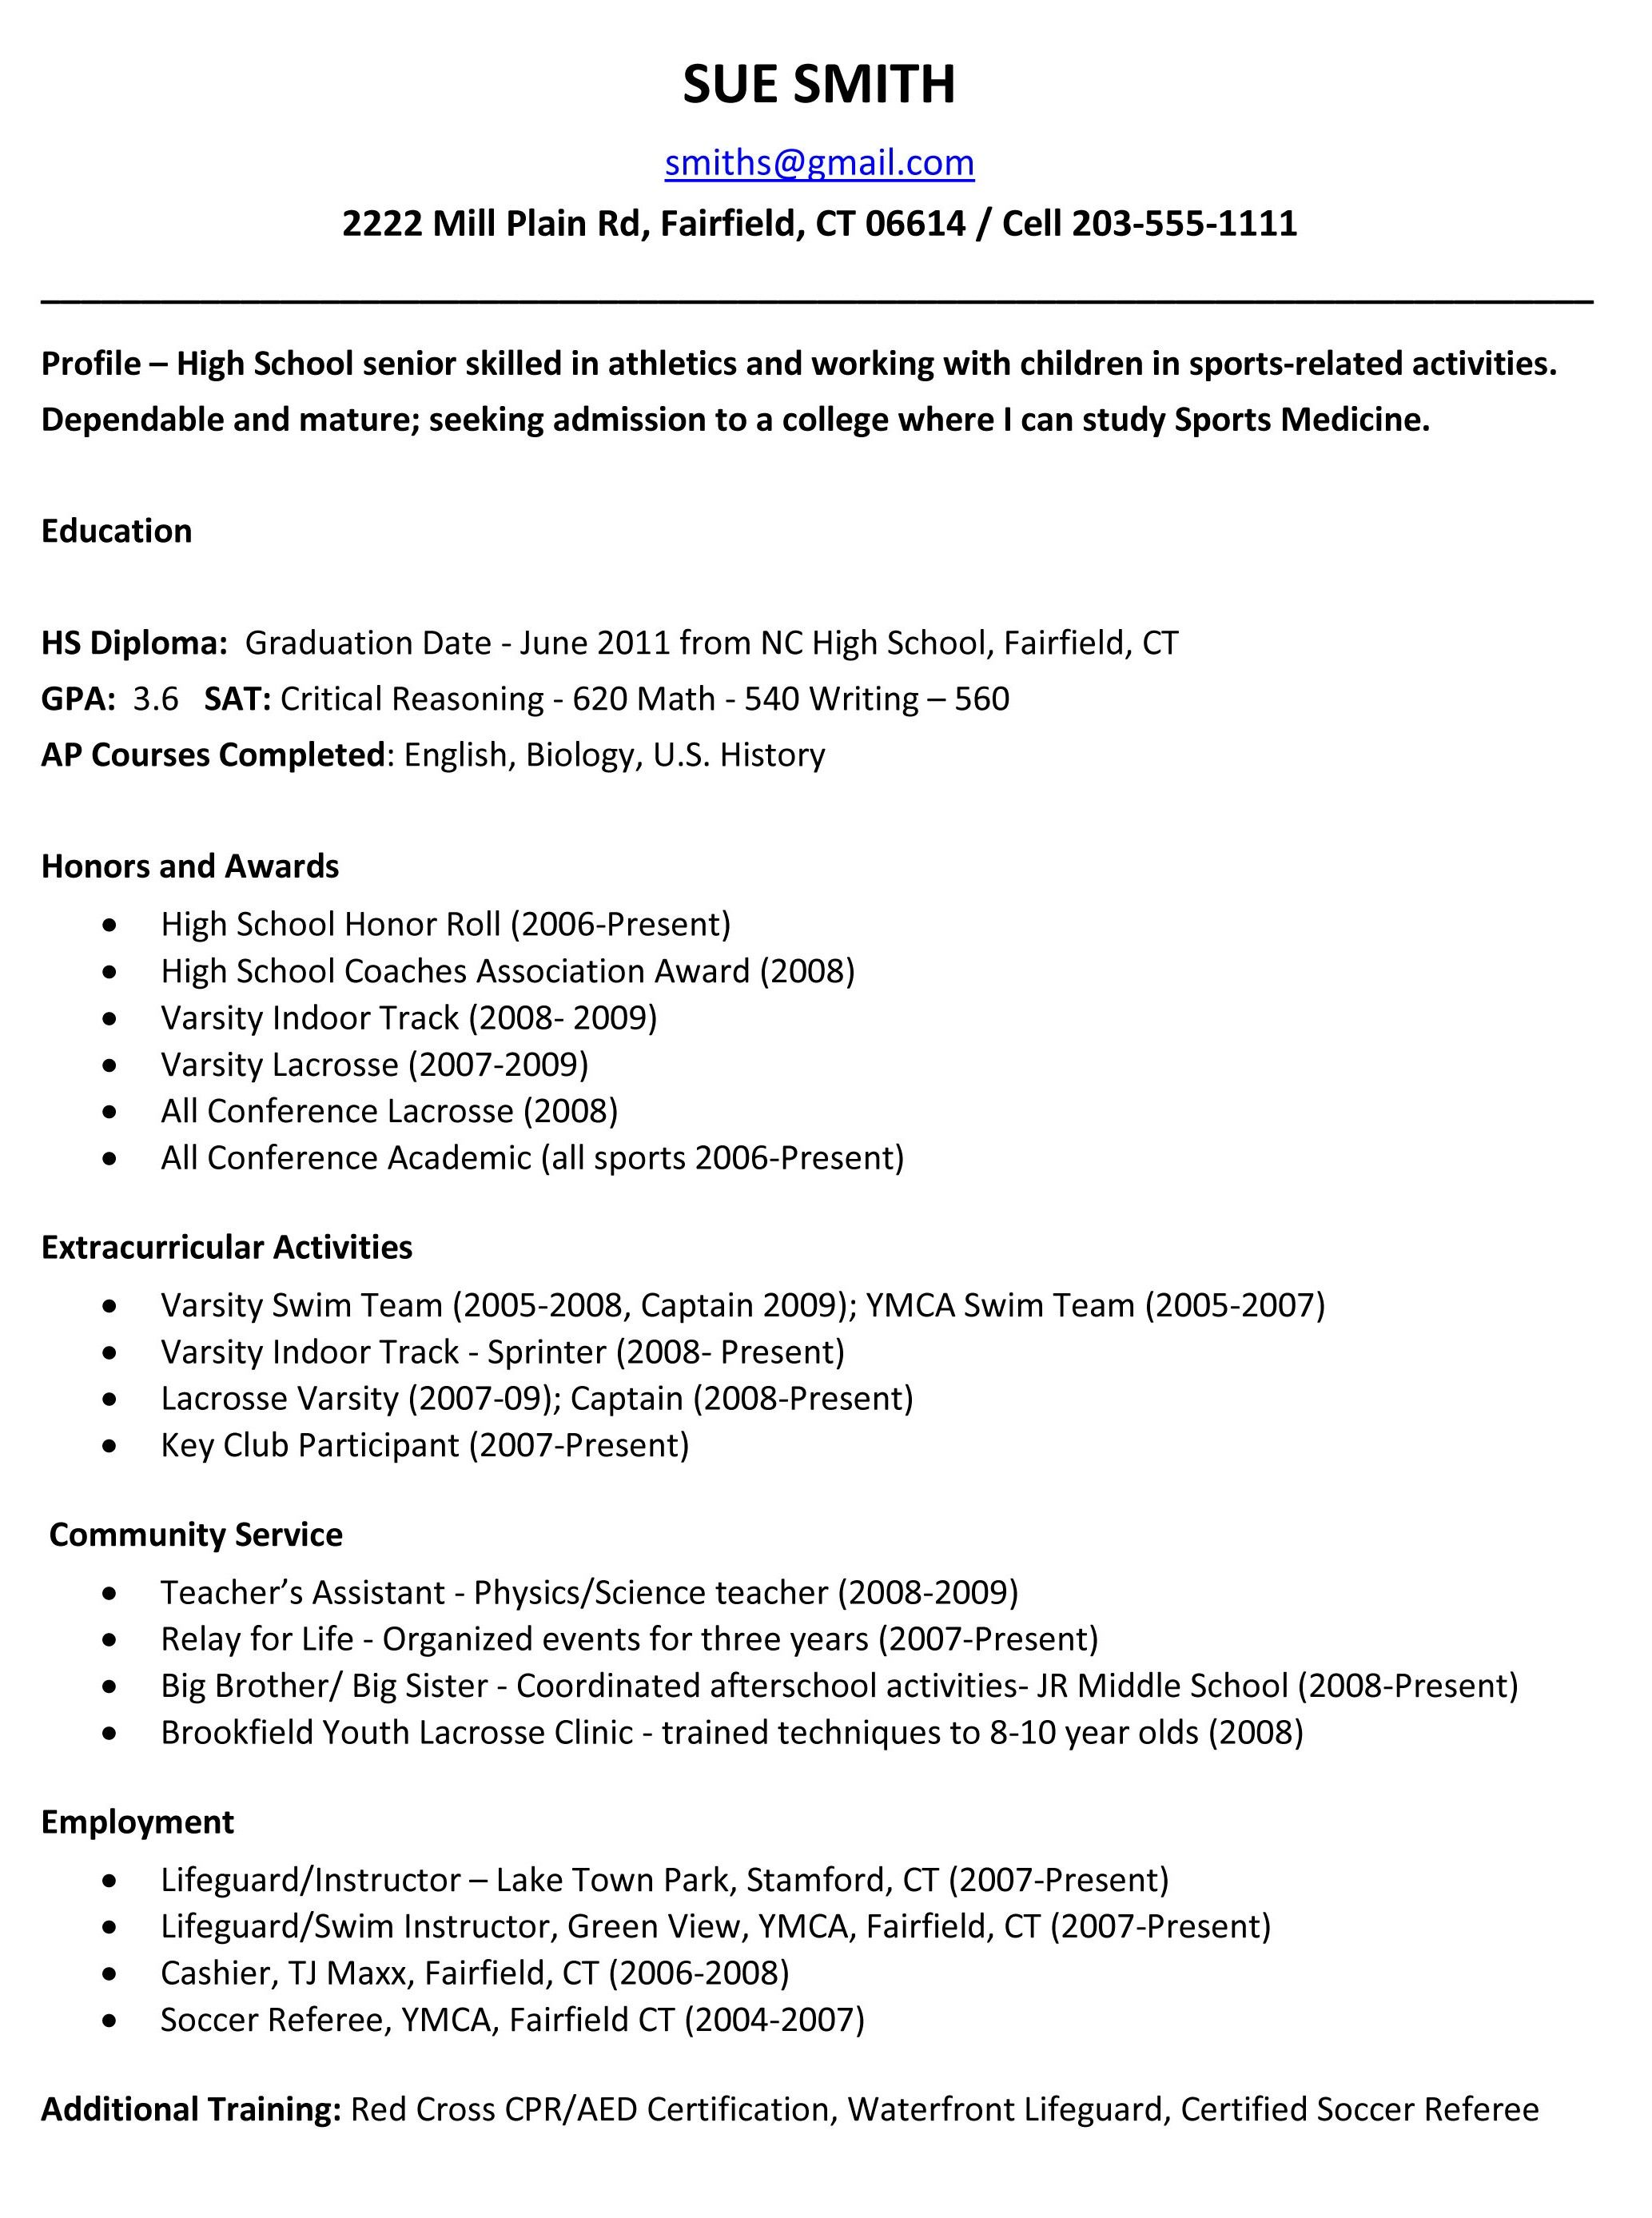 Pin by resumejob on Resume Job | High school resume template ...